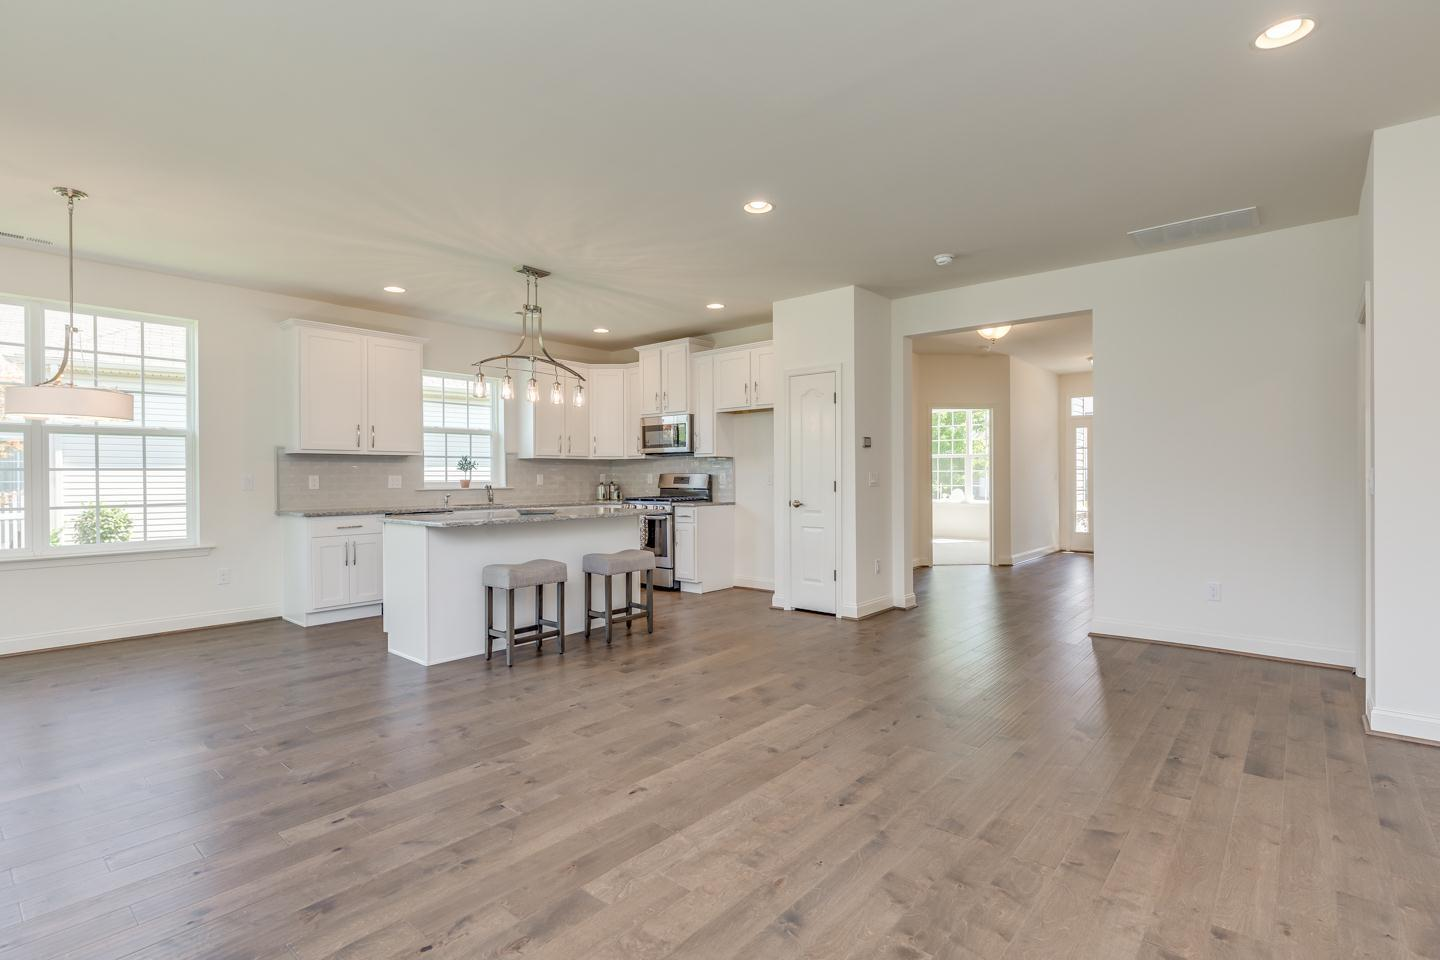 Kitchen featured in The Primrose By Paparone New Homes in Philadelphia, NJ